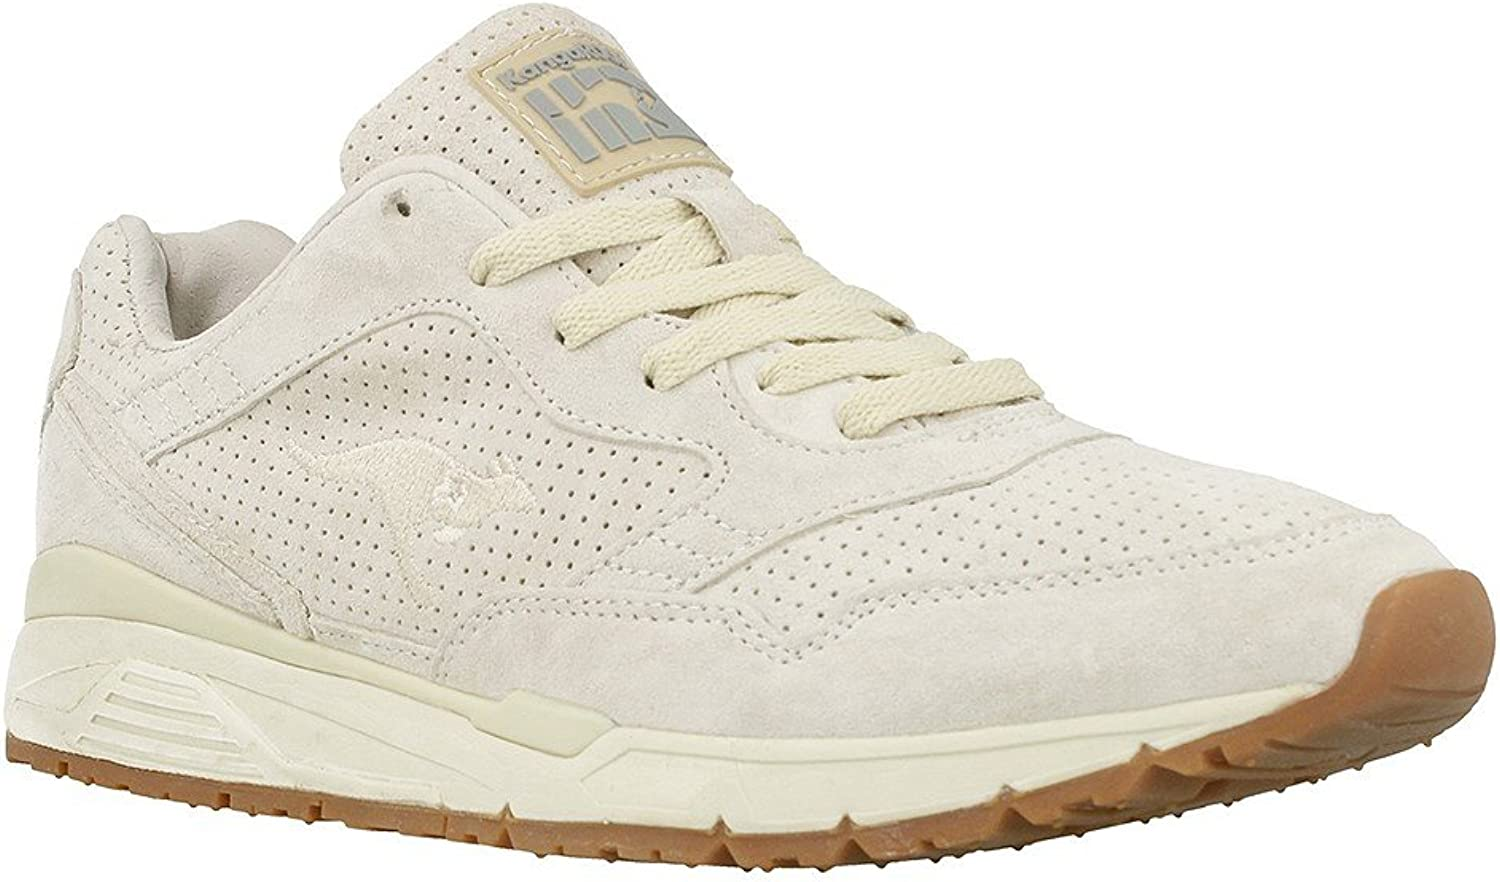 KangaROOS Unisex-Erwachsene Ultimate Ultimate Ultimate Leather Low-Top  afd8c8